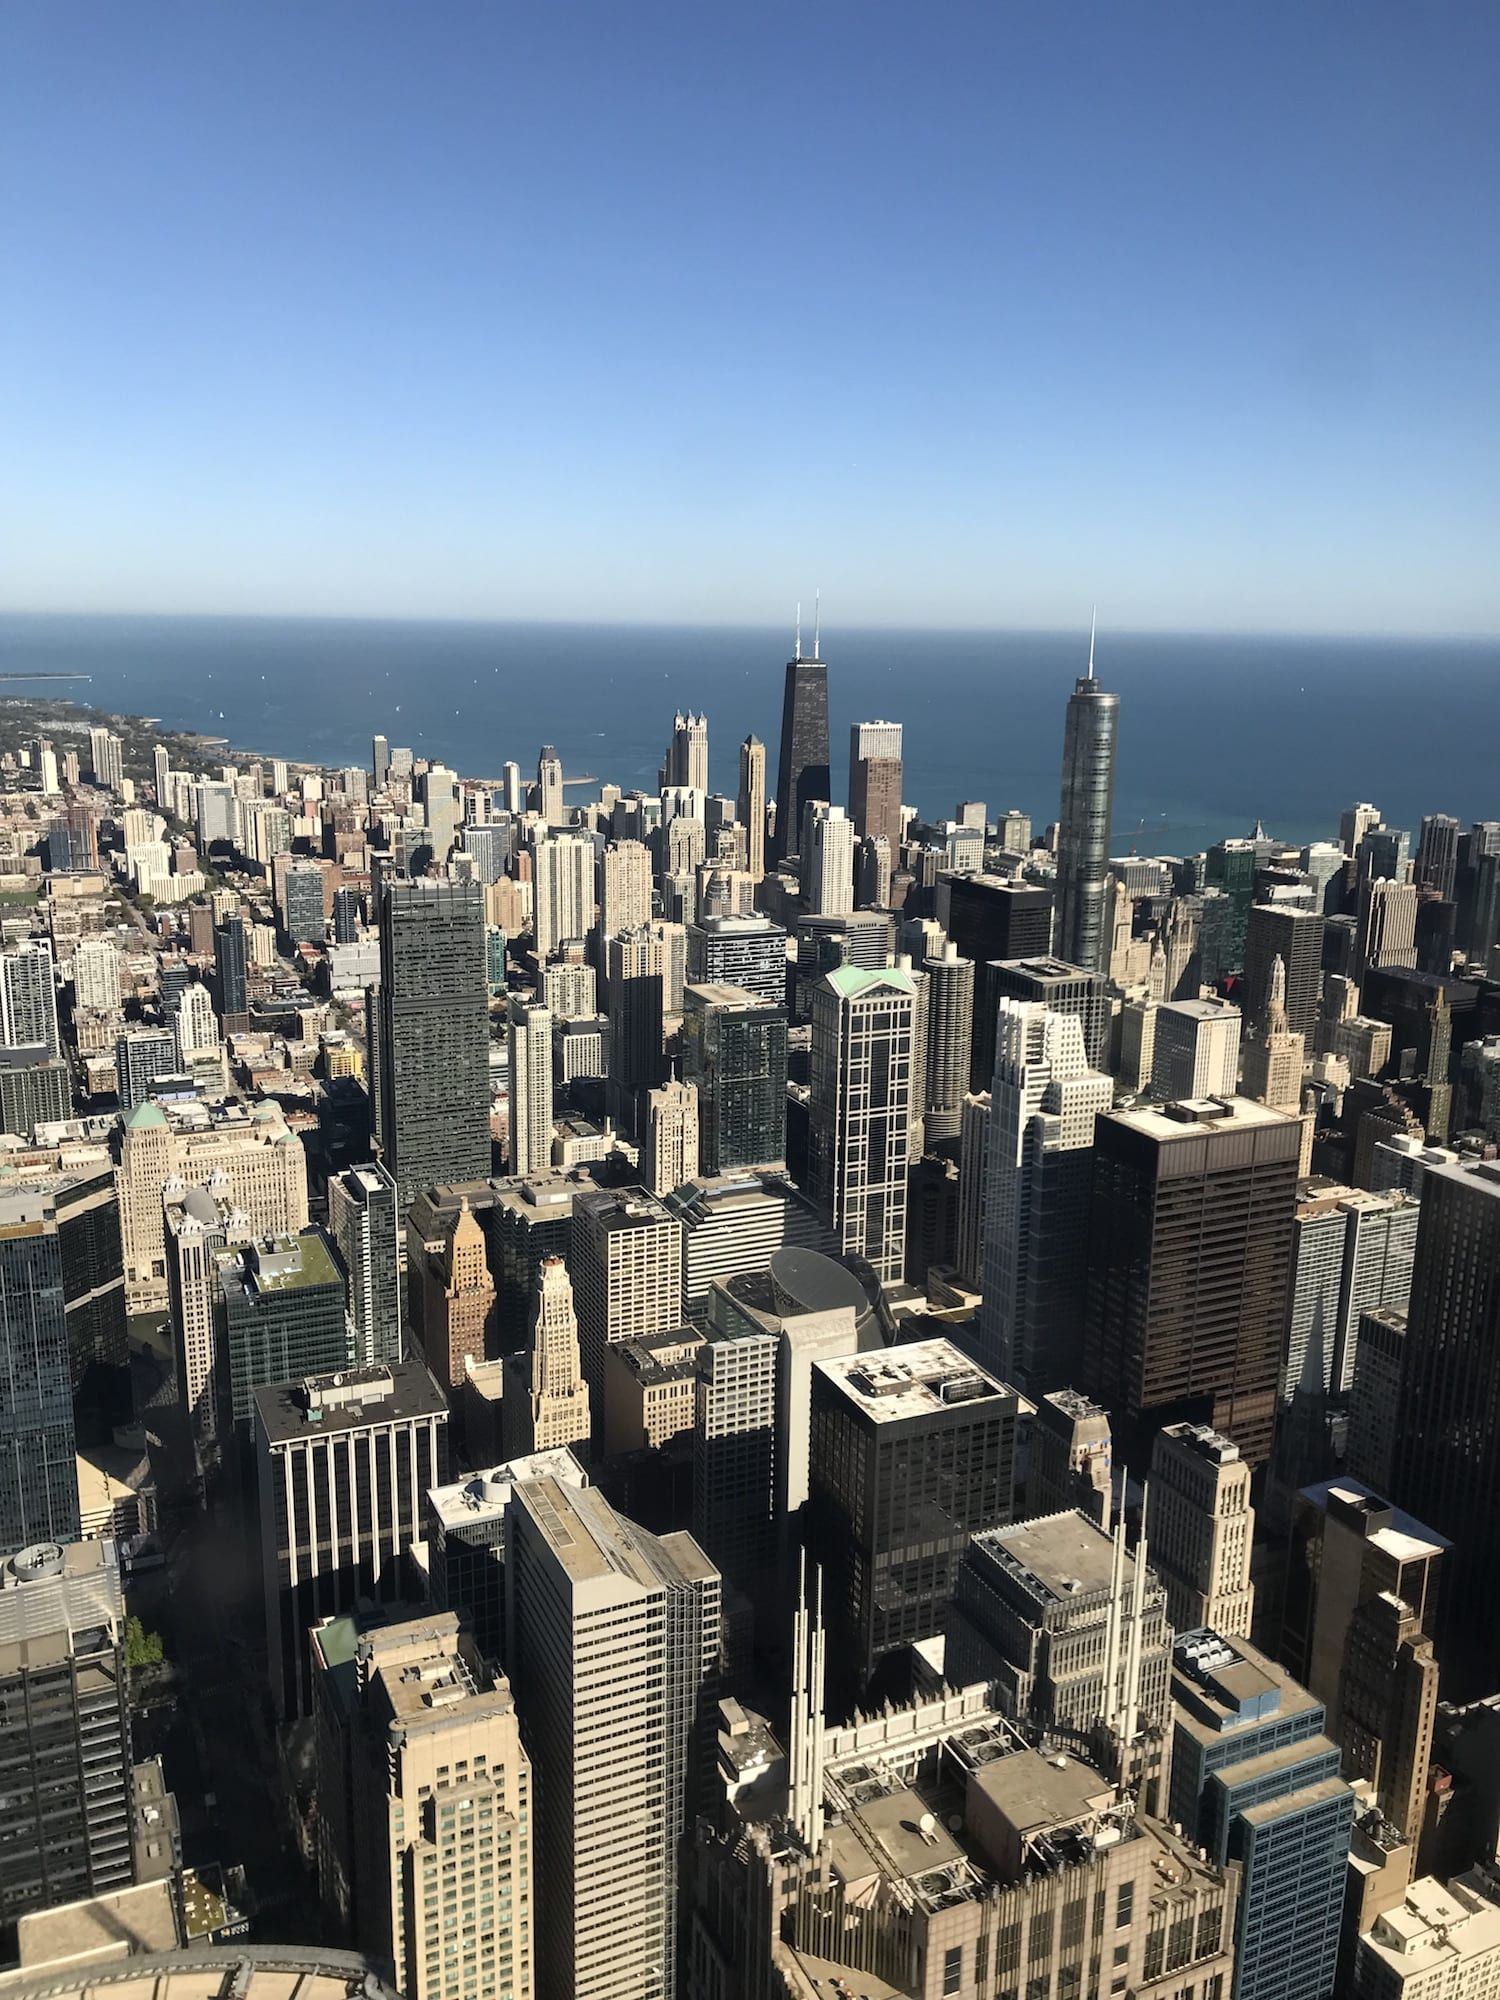 View from the top of Willis Tower